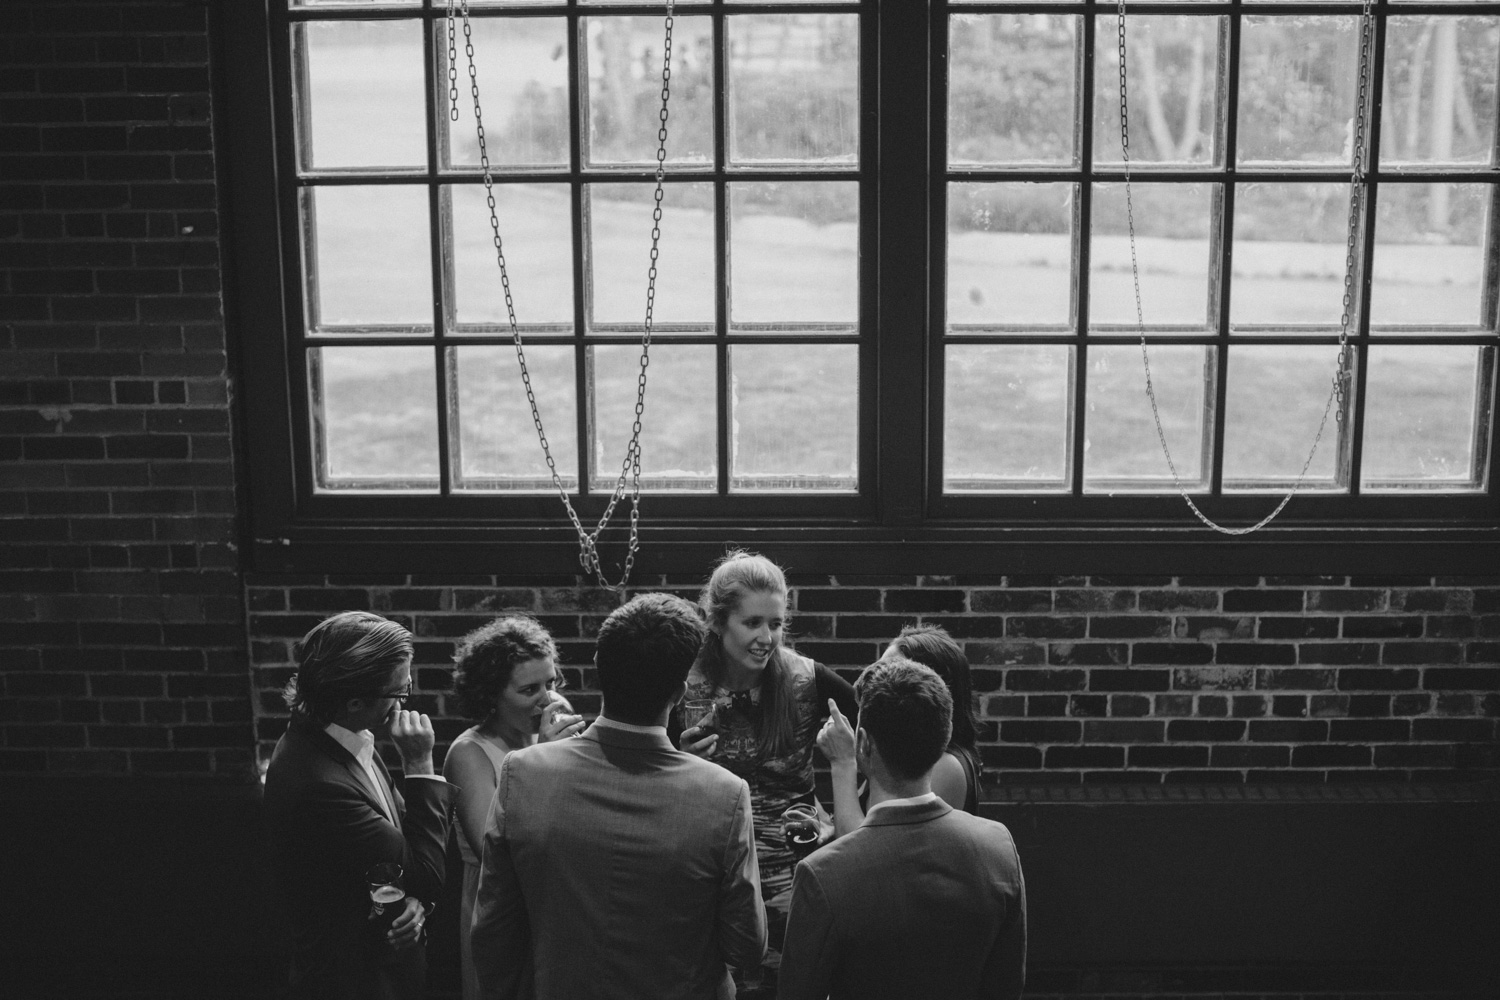 steam-whistle-brewery-wedding-photos-toronto-wedding-photography-by-sam-wong-of-artanis-collective_01043